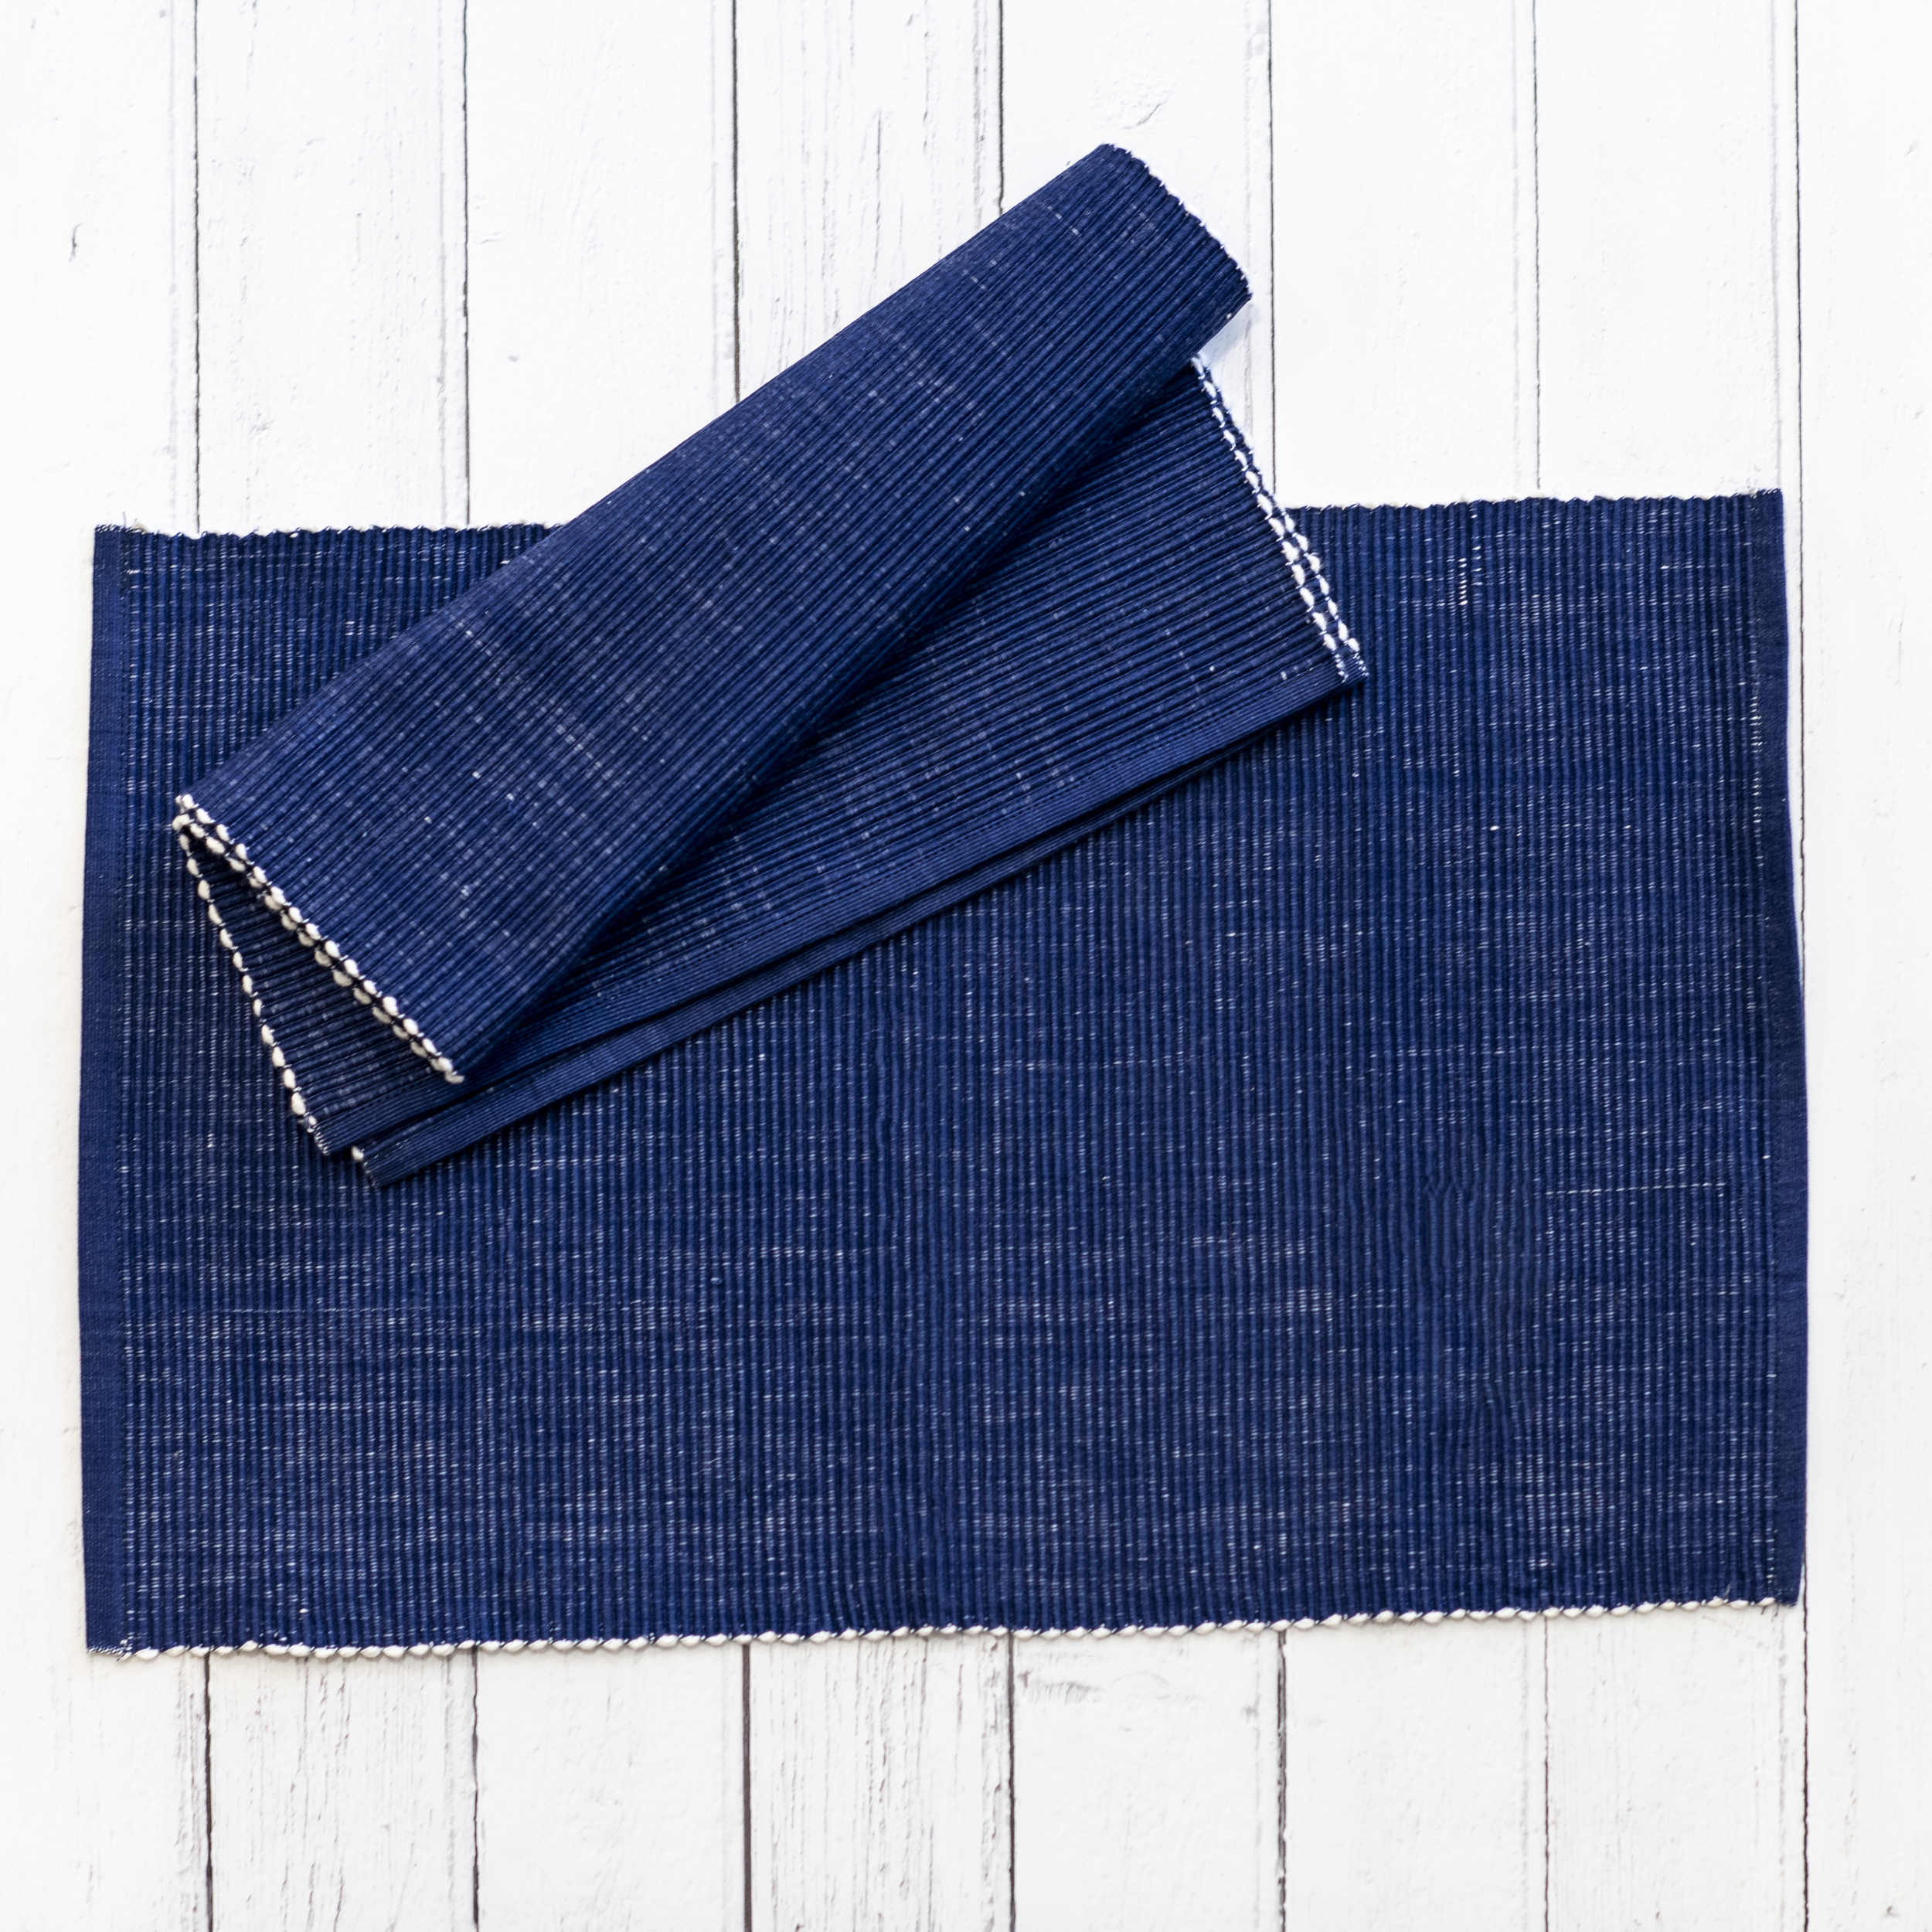 Ribbed Indigo Placemat